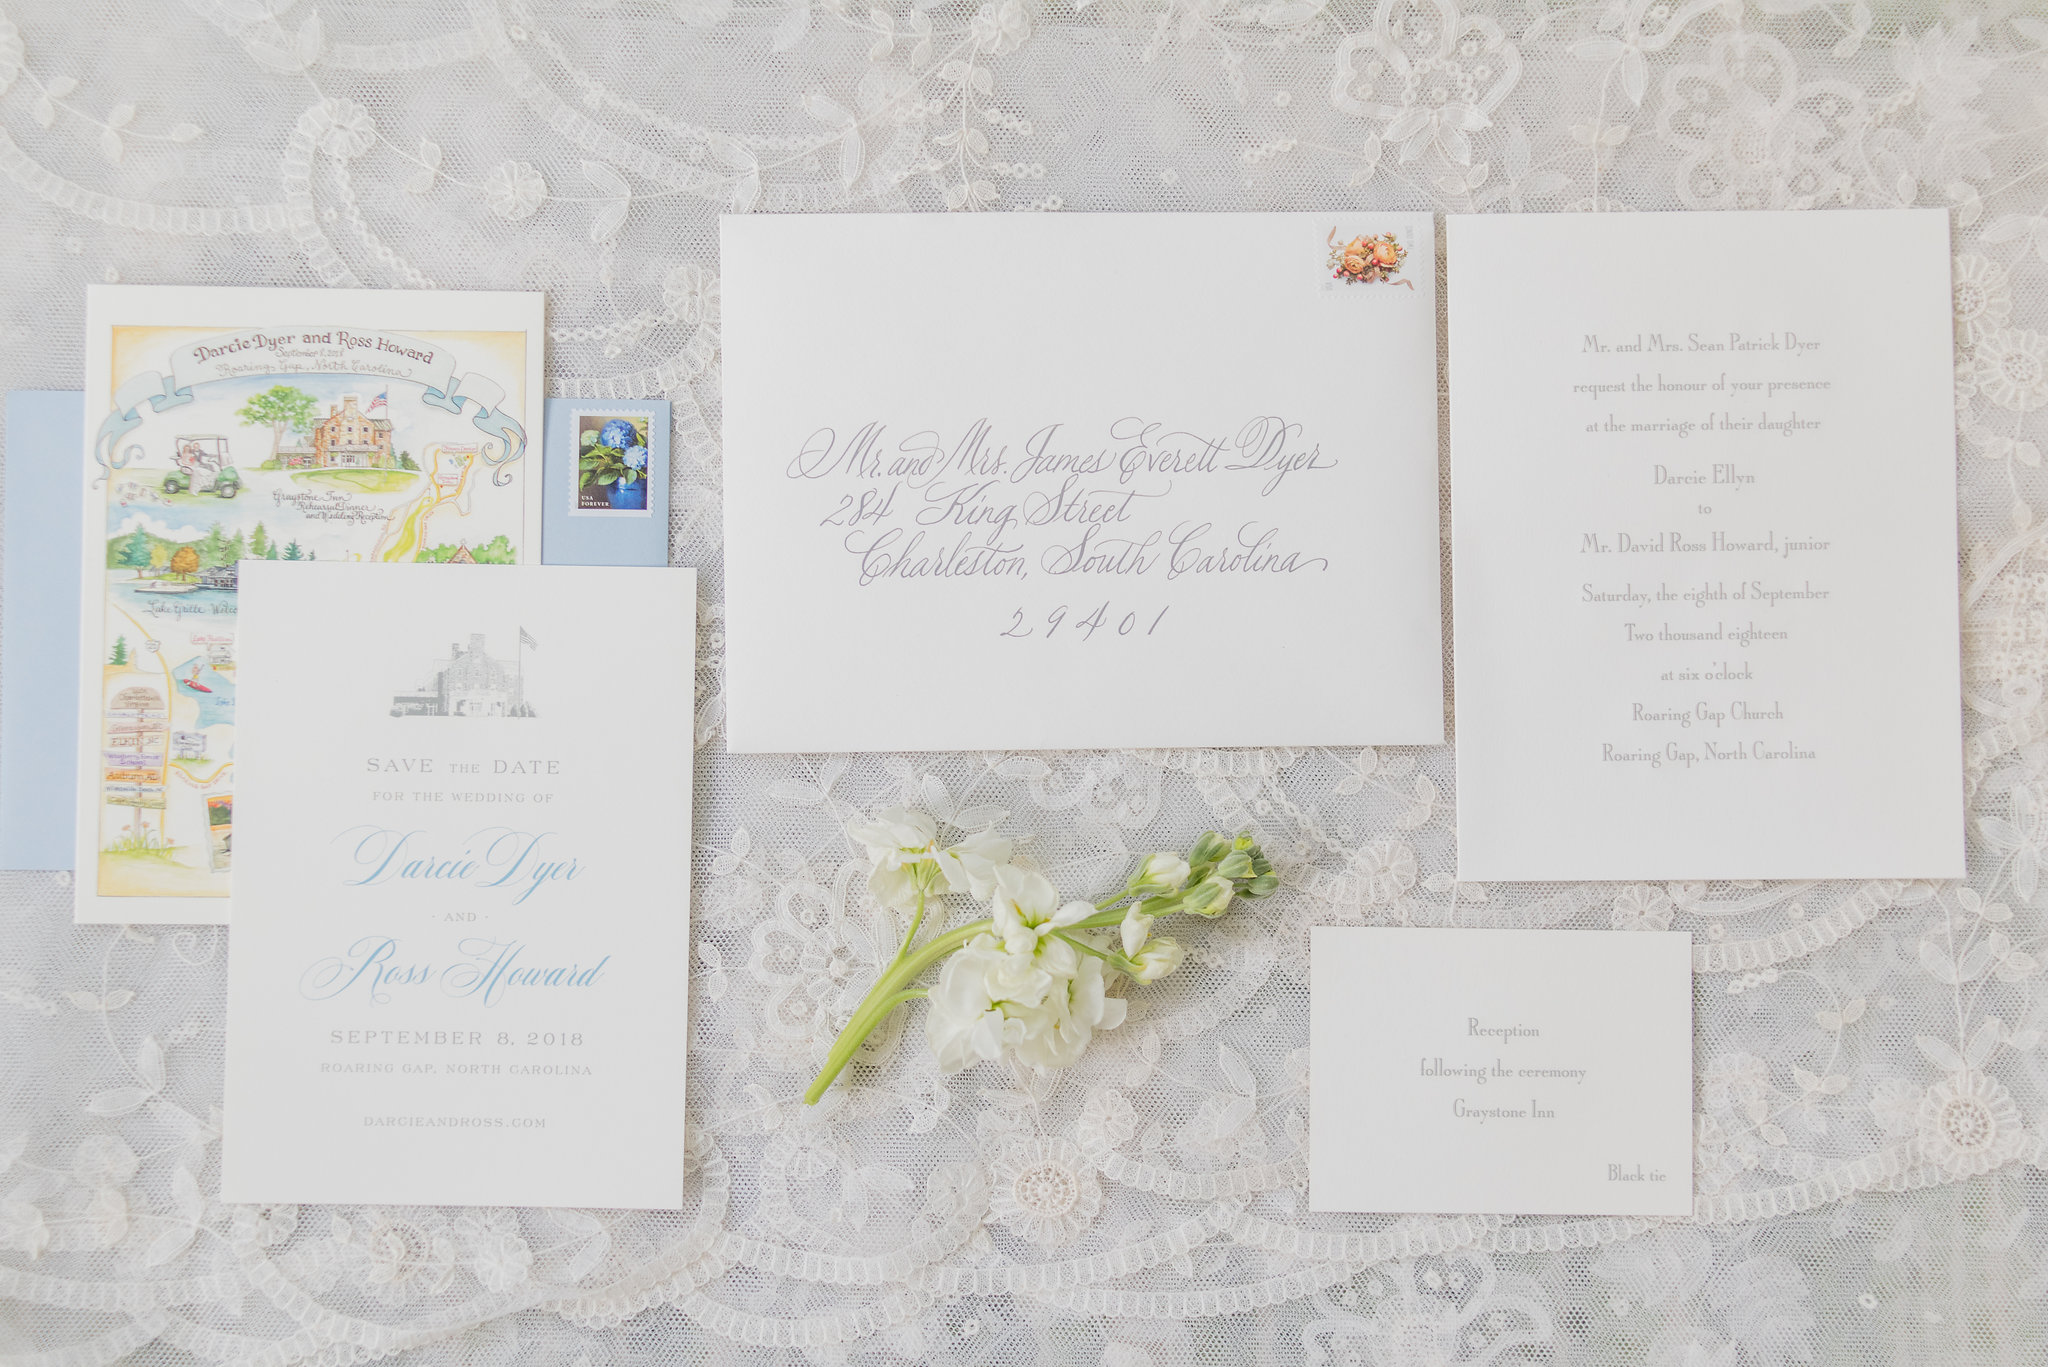 North Carolina Wedding, Events by Reagan, Destination Wedding Planner, Wedding Invitations, Save the dates